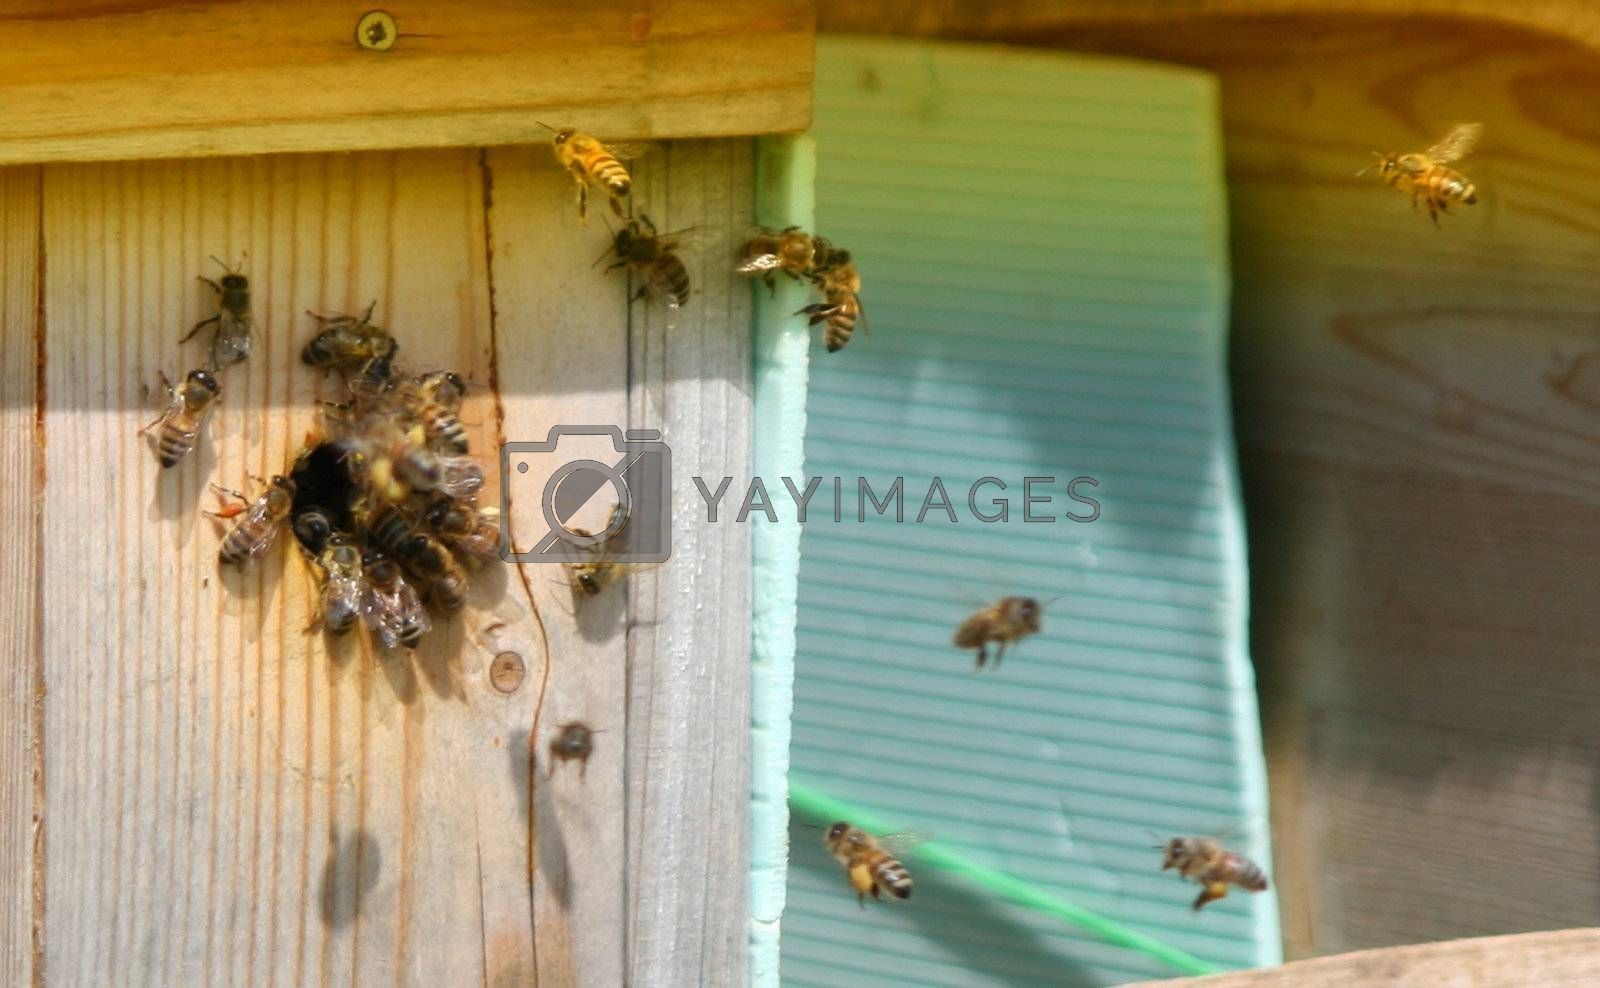 Bee, swarm, rural, risk, pollination, pollen, nectar, maintenance, lavoro, ispezionare, house, honey, hive, garden, food, farm, ecological, care, box, beekeeper, beehive, apiculture, apiary, api, all'aperto, agriculture, activity,